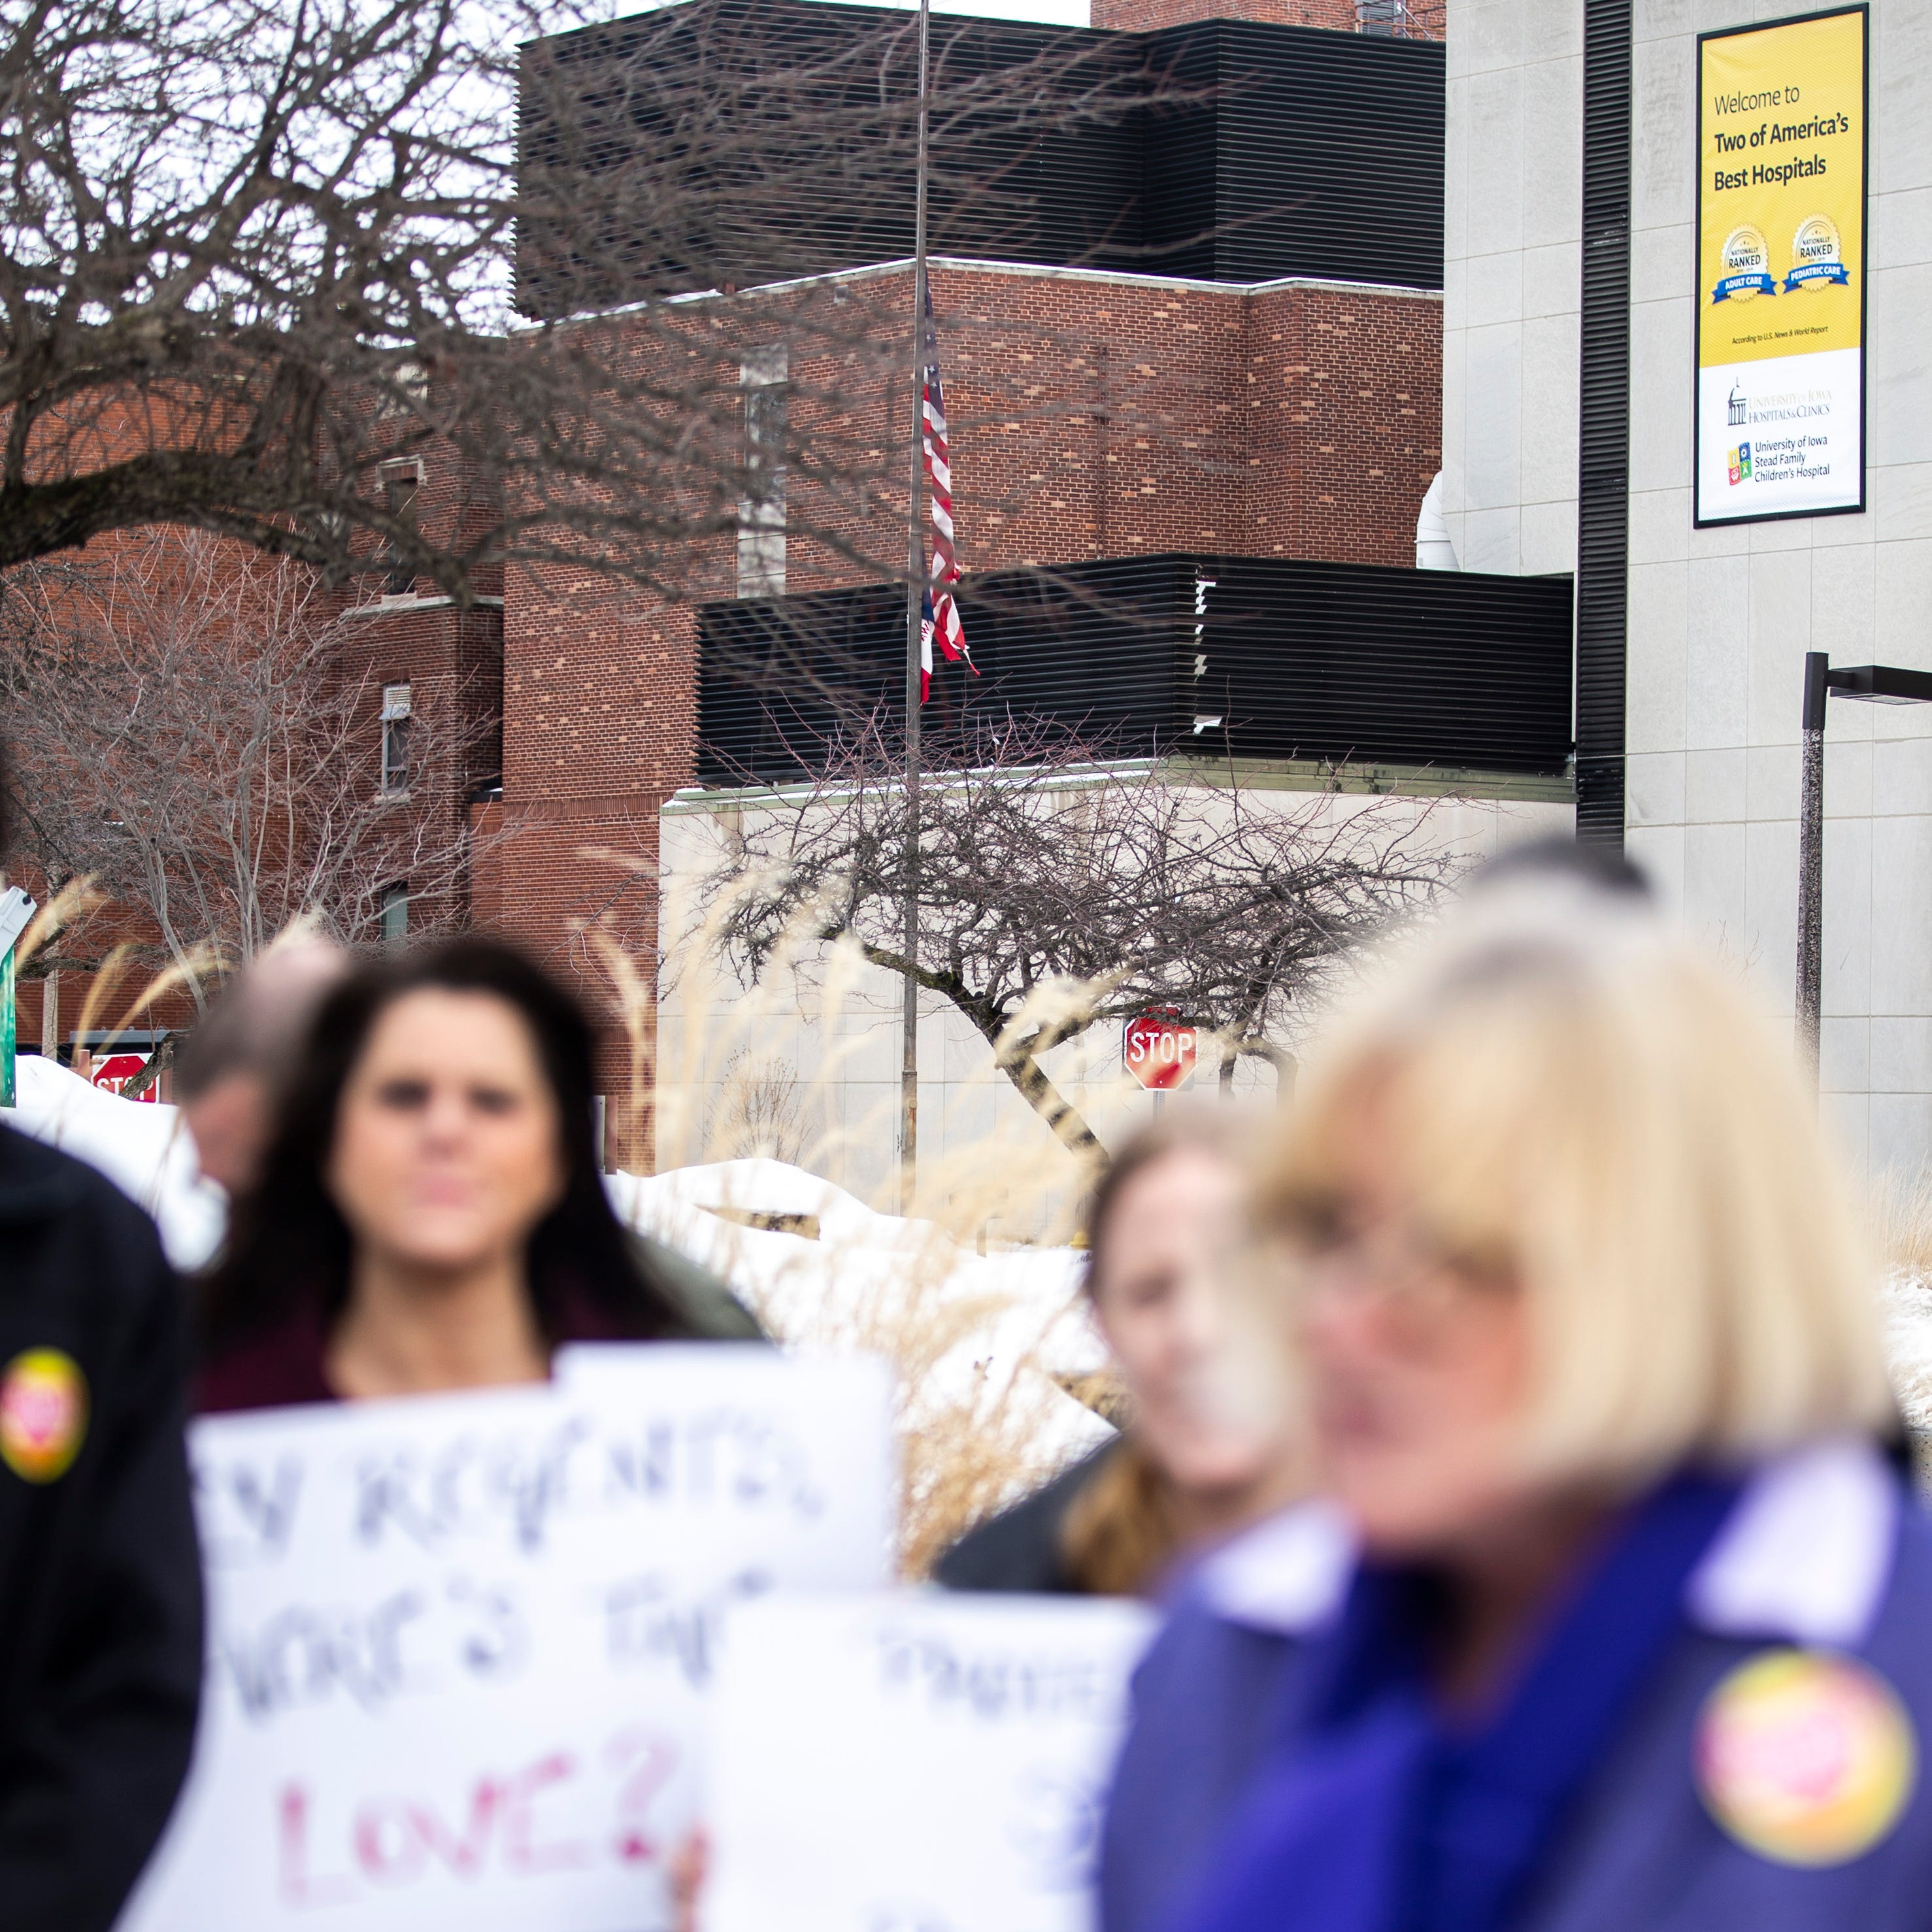 University of Iowa nurses approve new contract after tense negotiation